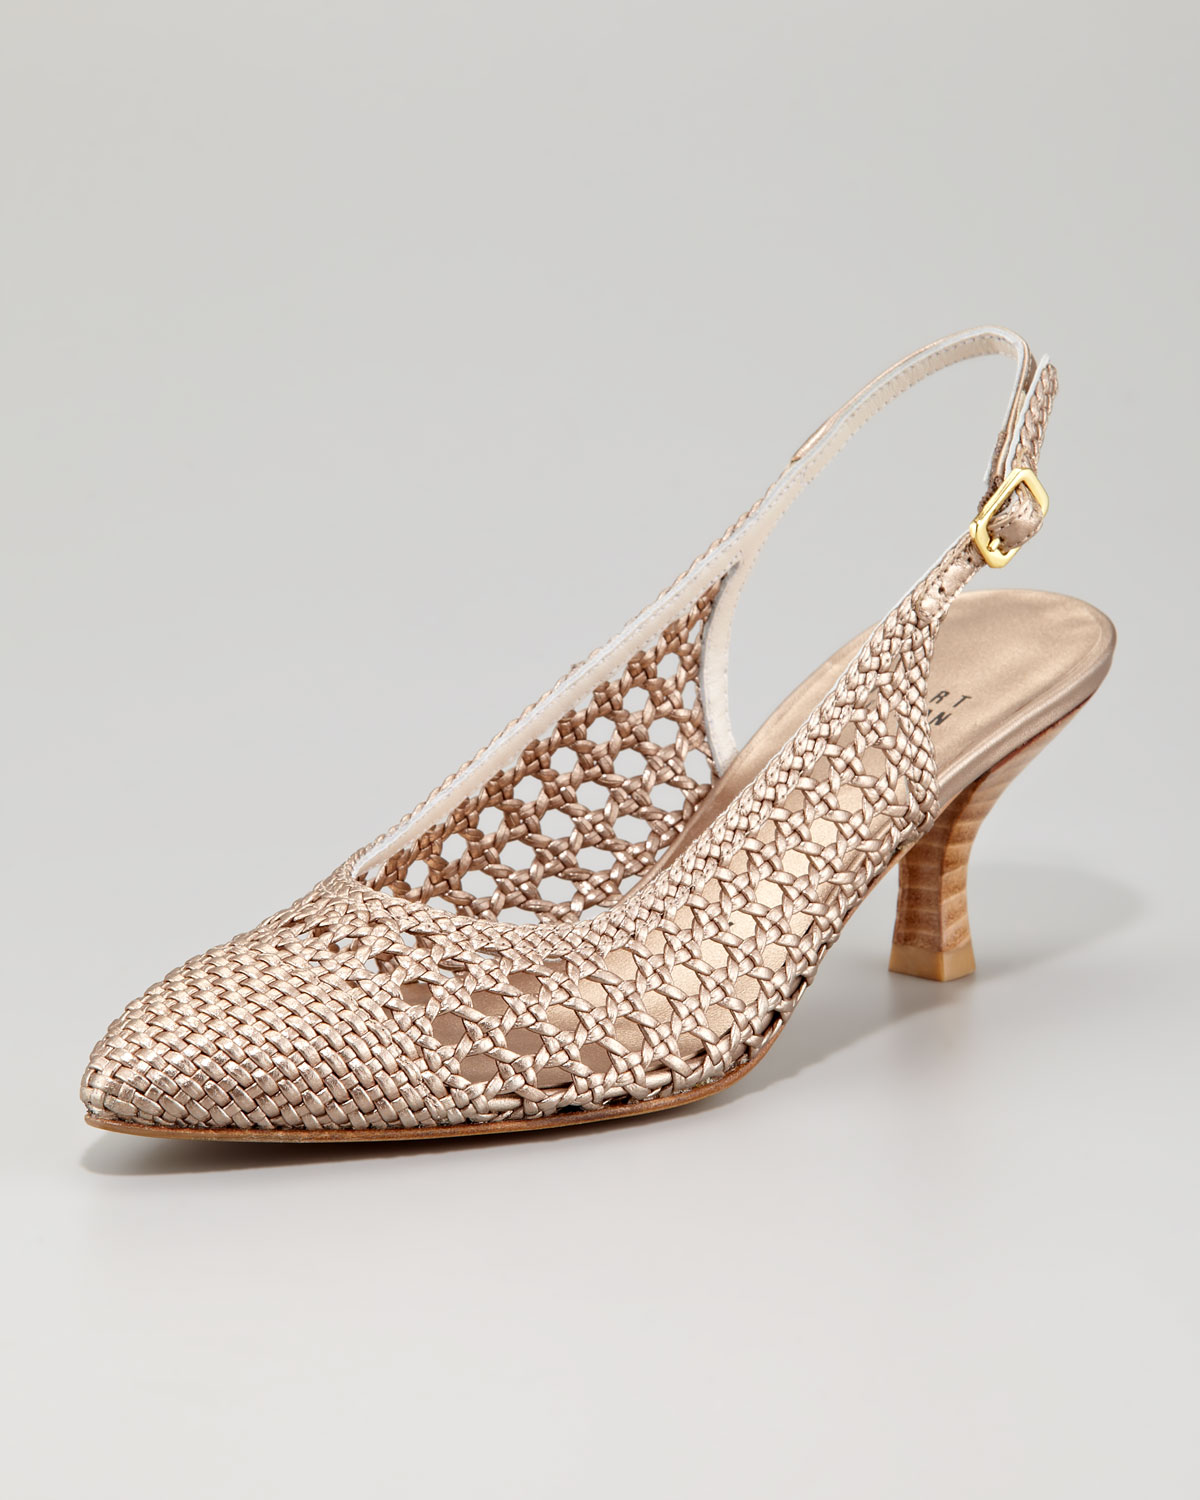 Stuart weitzman Meeting Woven Leather Kitten heel Sling-back in ...